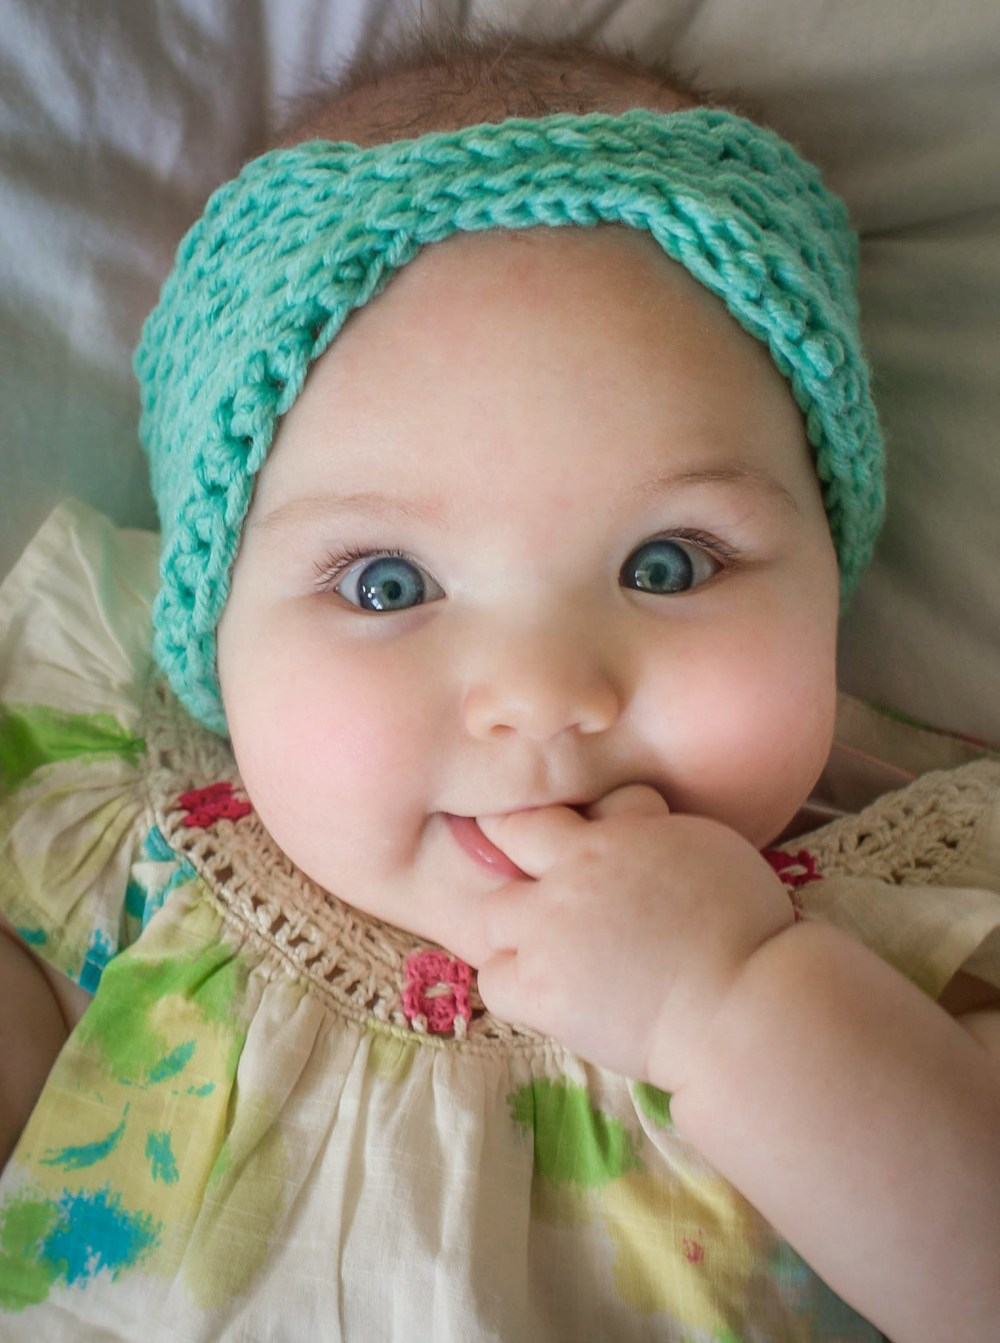 Crochet Patterns For Baby Beanies With Flowers : Free Head Wrap Crochet Patternmamachee